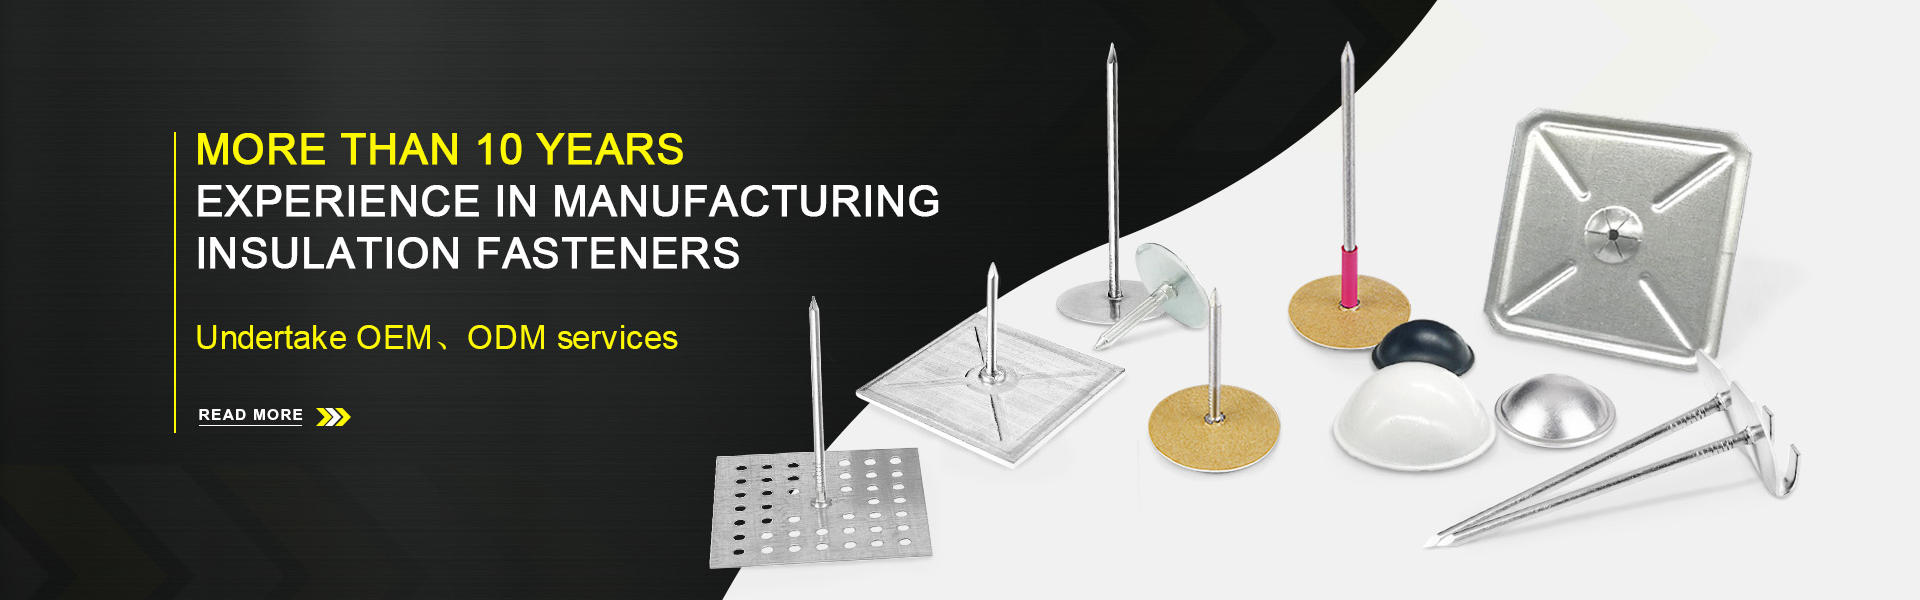 video-mesh self locking washers wholesale for industry MPS-MPS-img